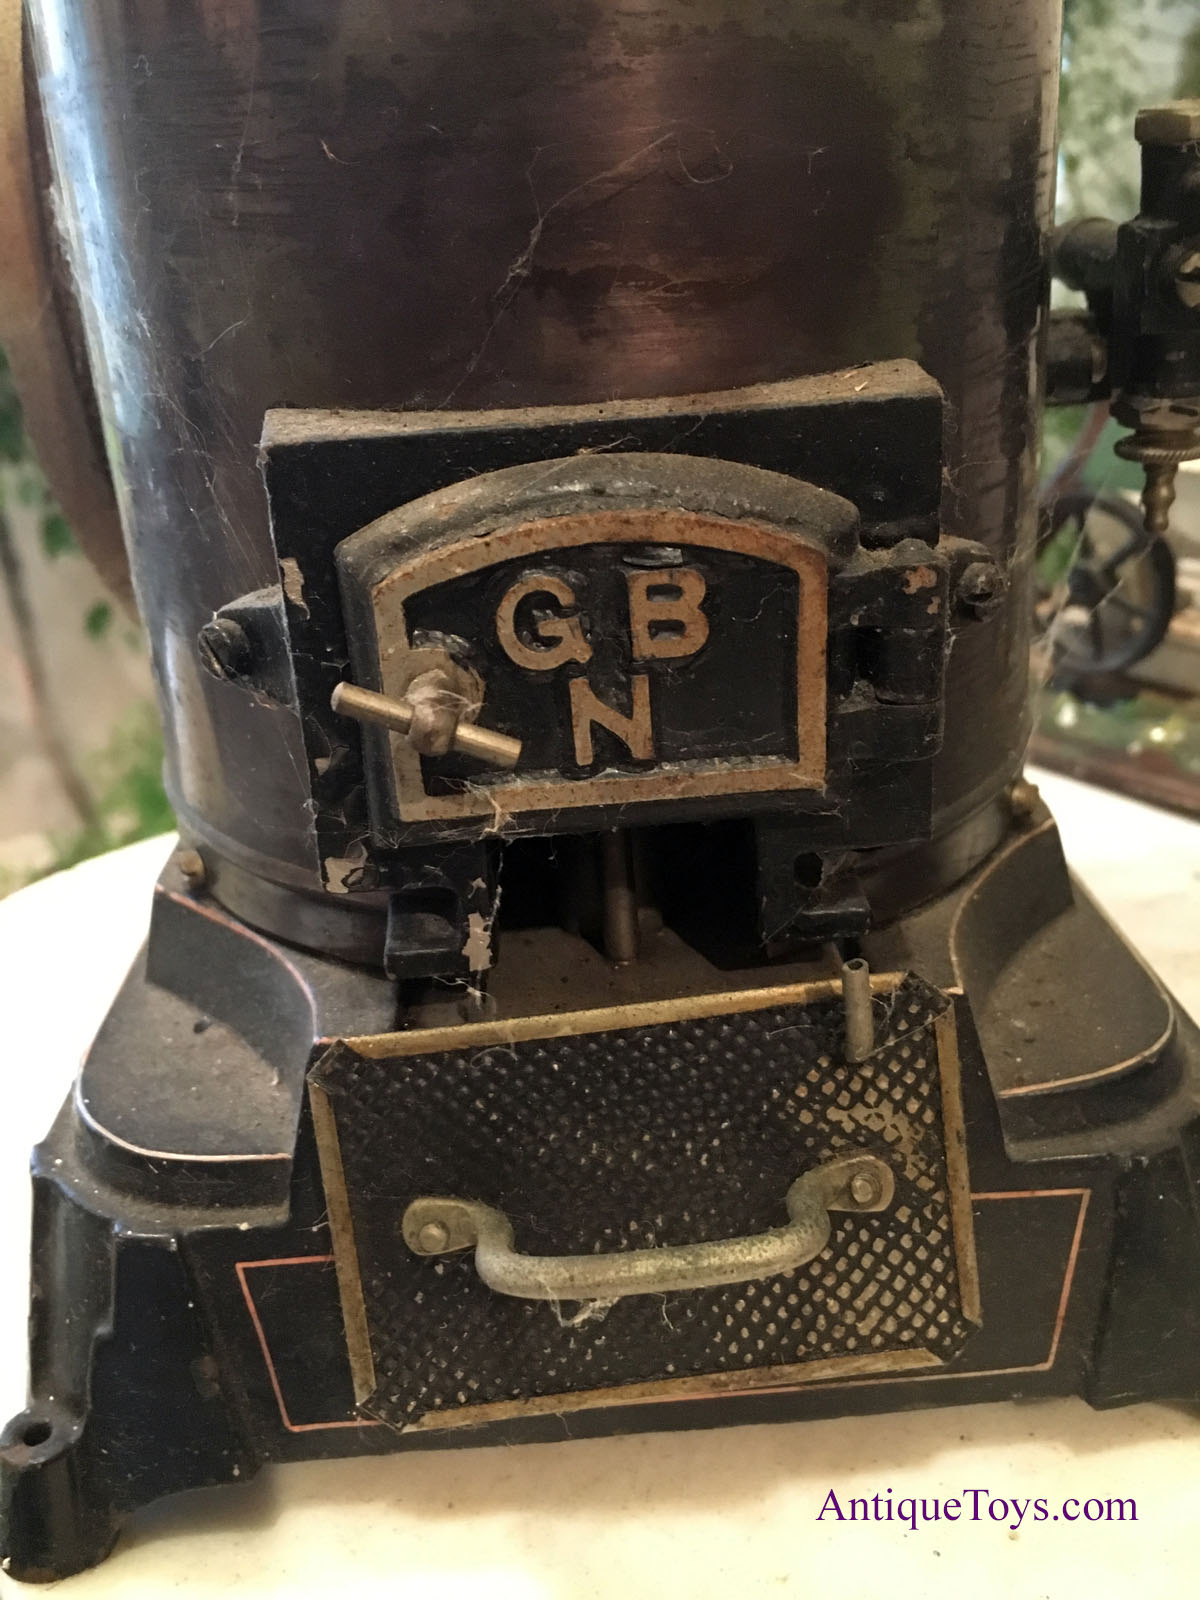 Classic Buses For Sale >> Bing, G.B.N., Steam Engine Extra Large for Sale - Antique Toys for Sale